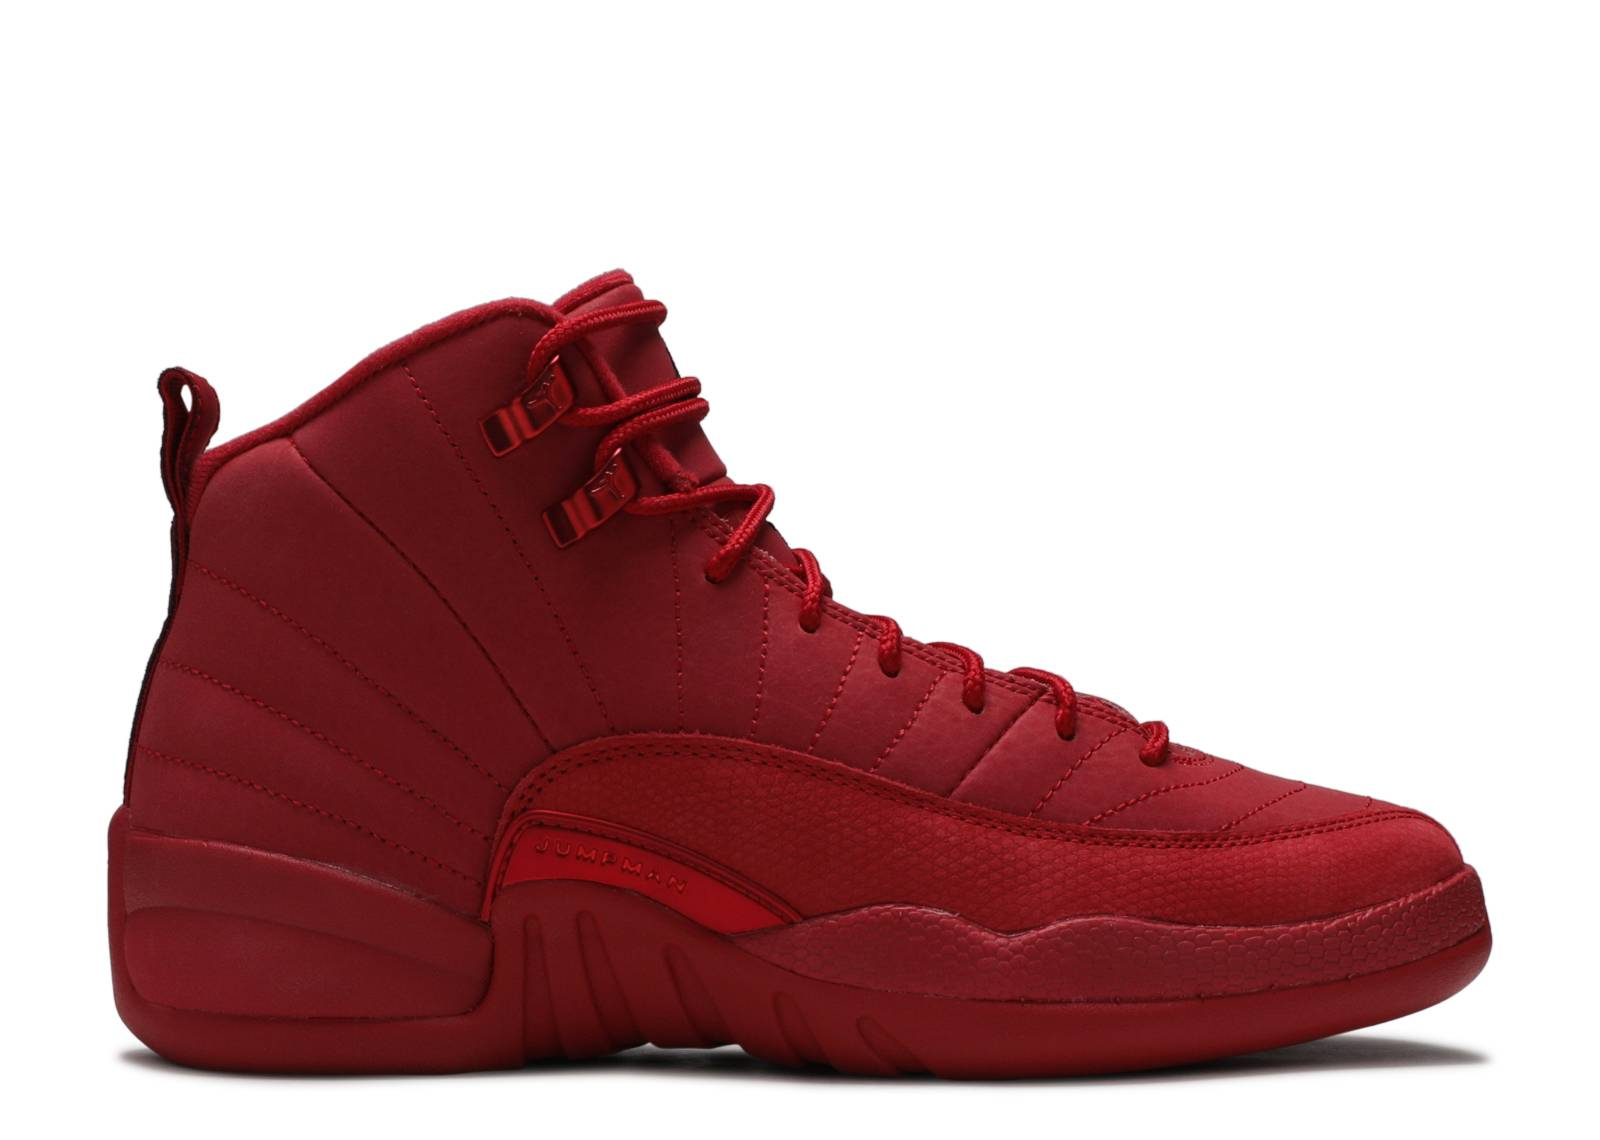 outlet online cheap for sale 100% quality Air Jordan 12 (XII) Shoes - Nike | Flight Club